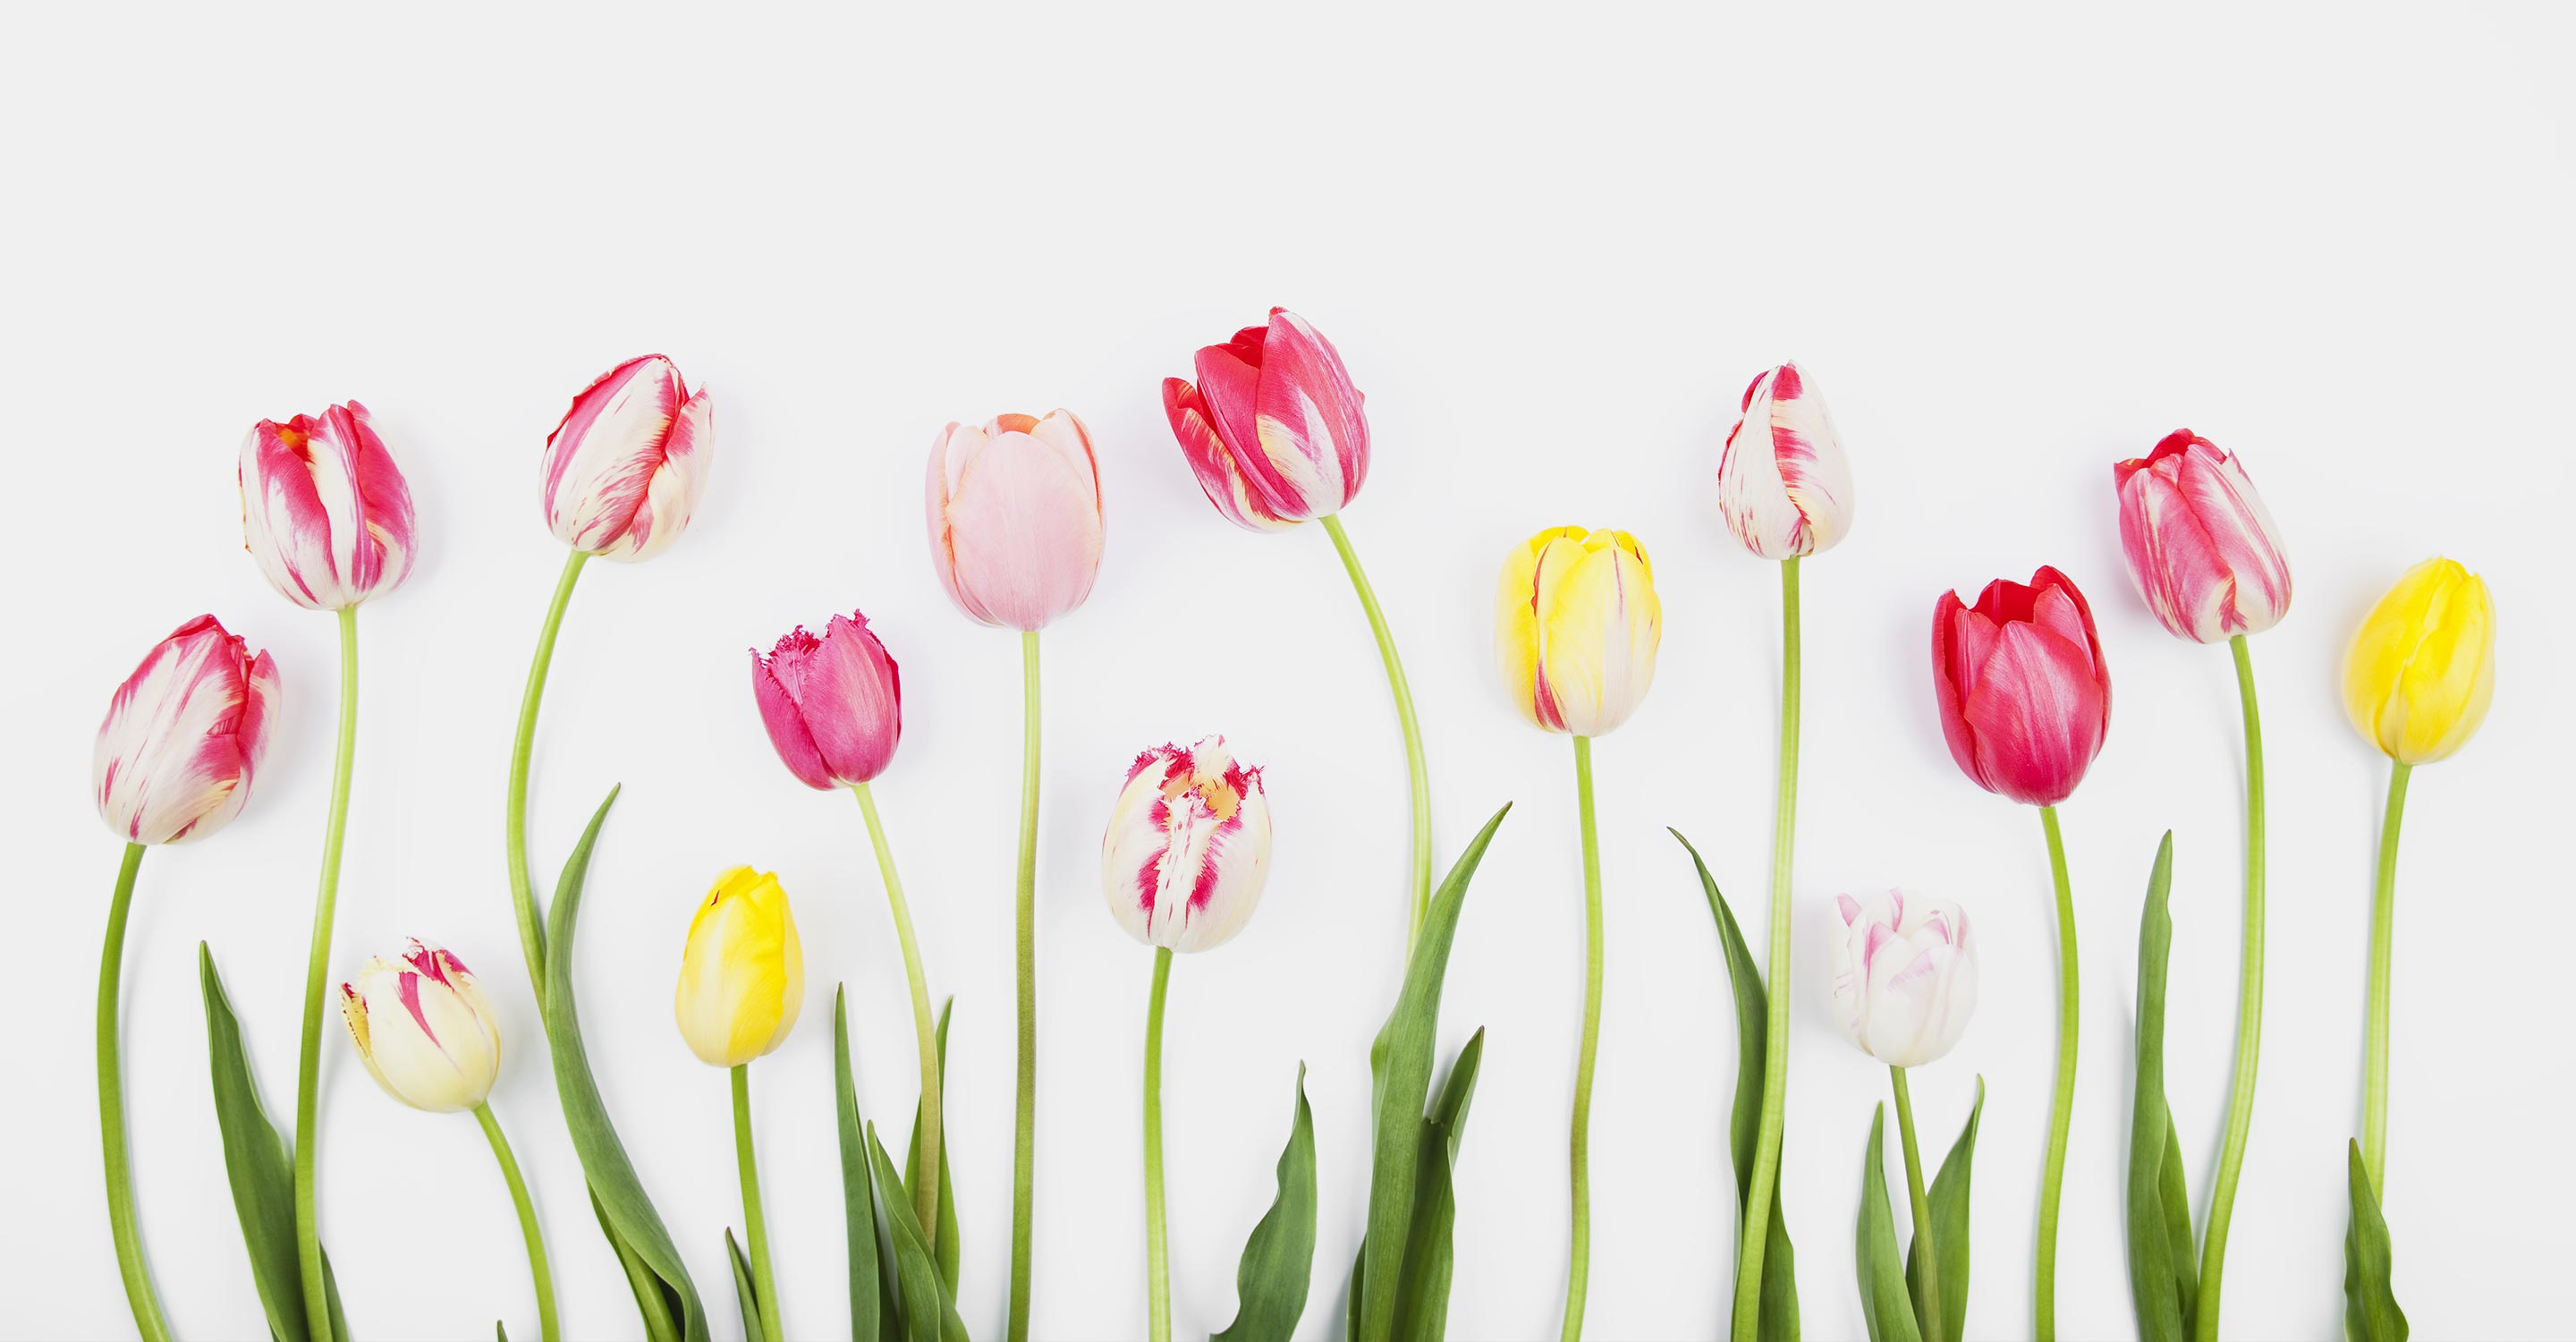 Pink and yellow tulip flowers